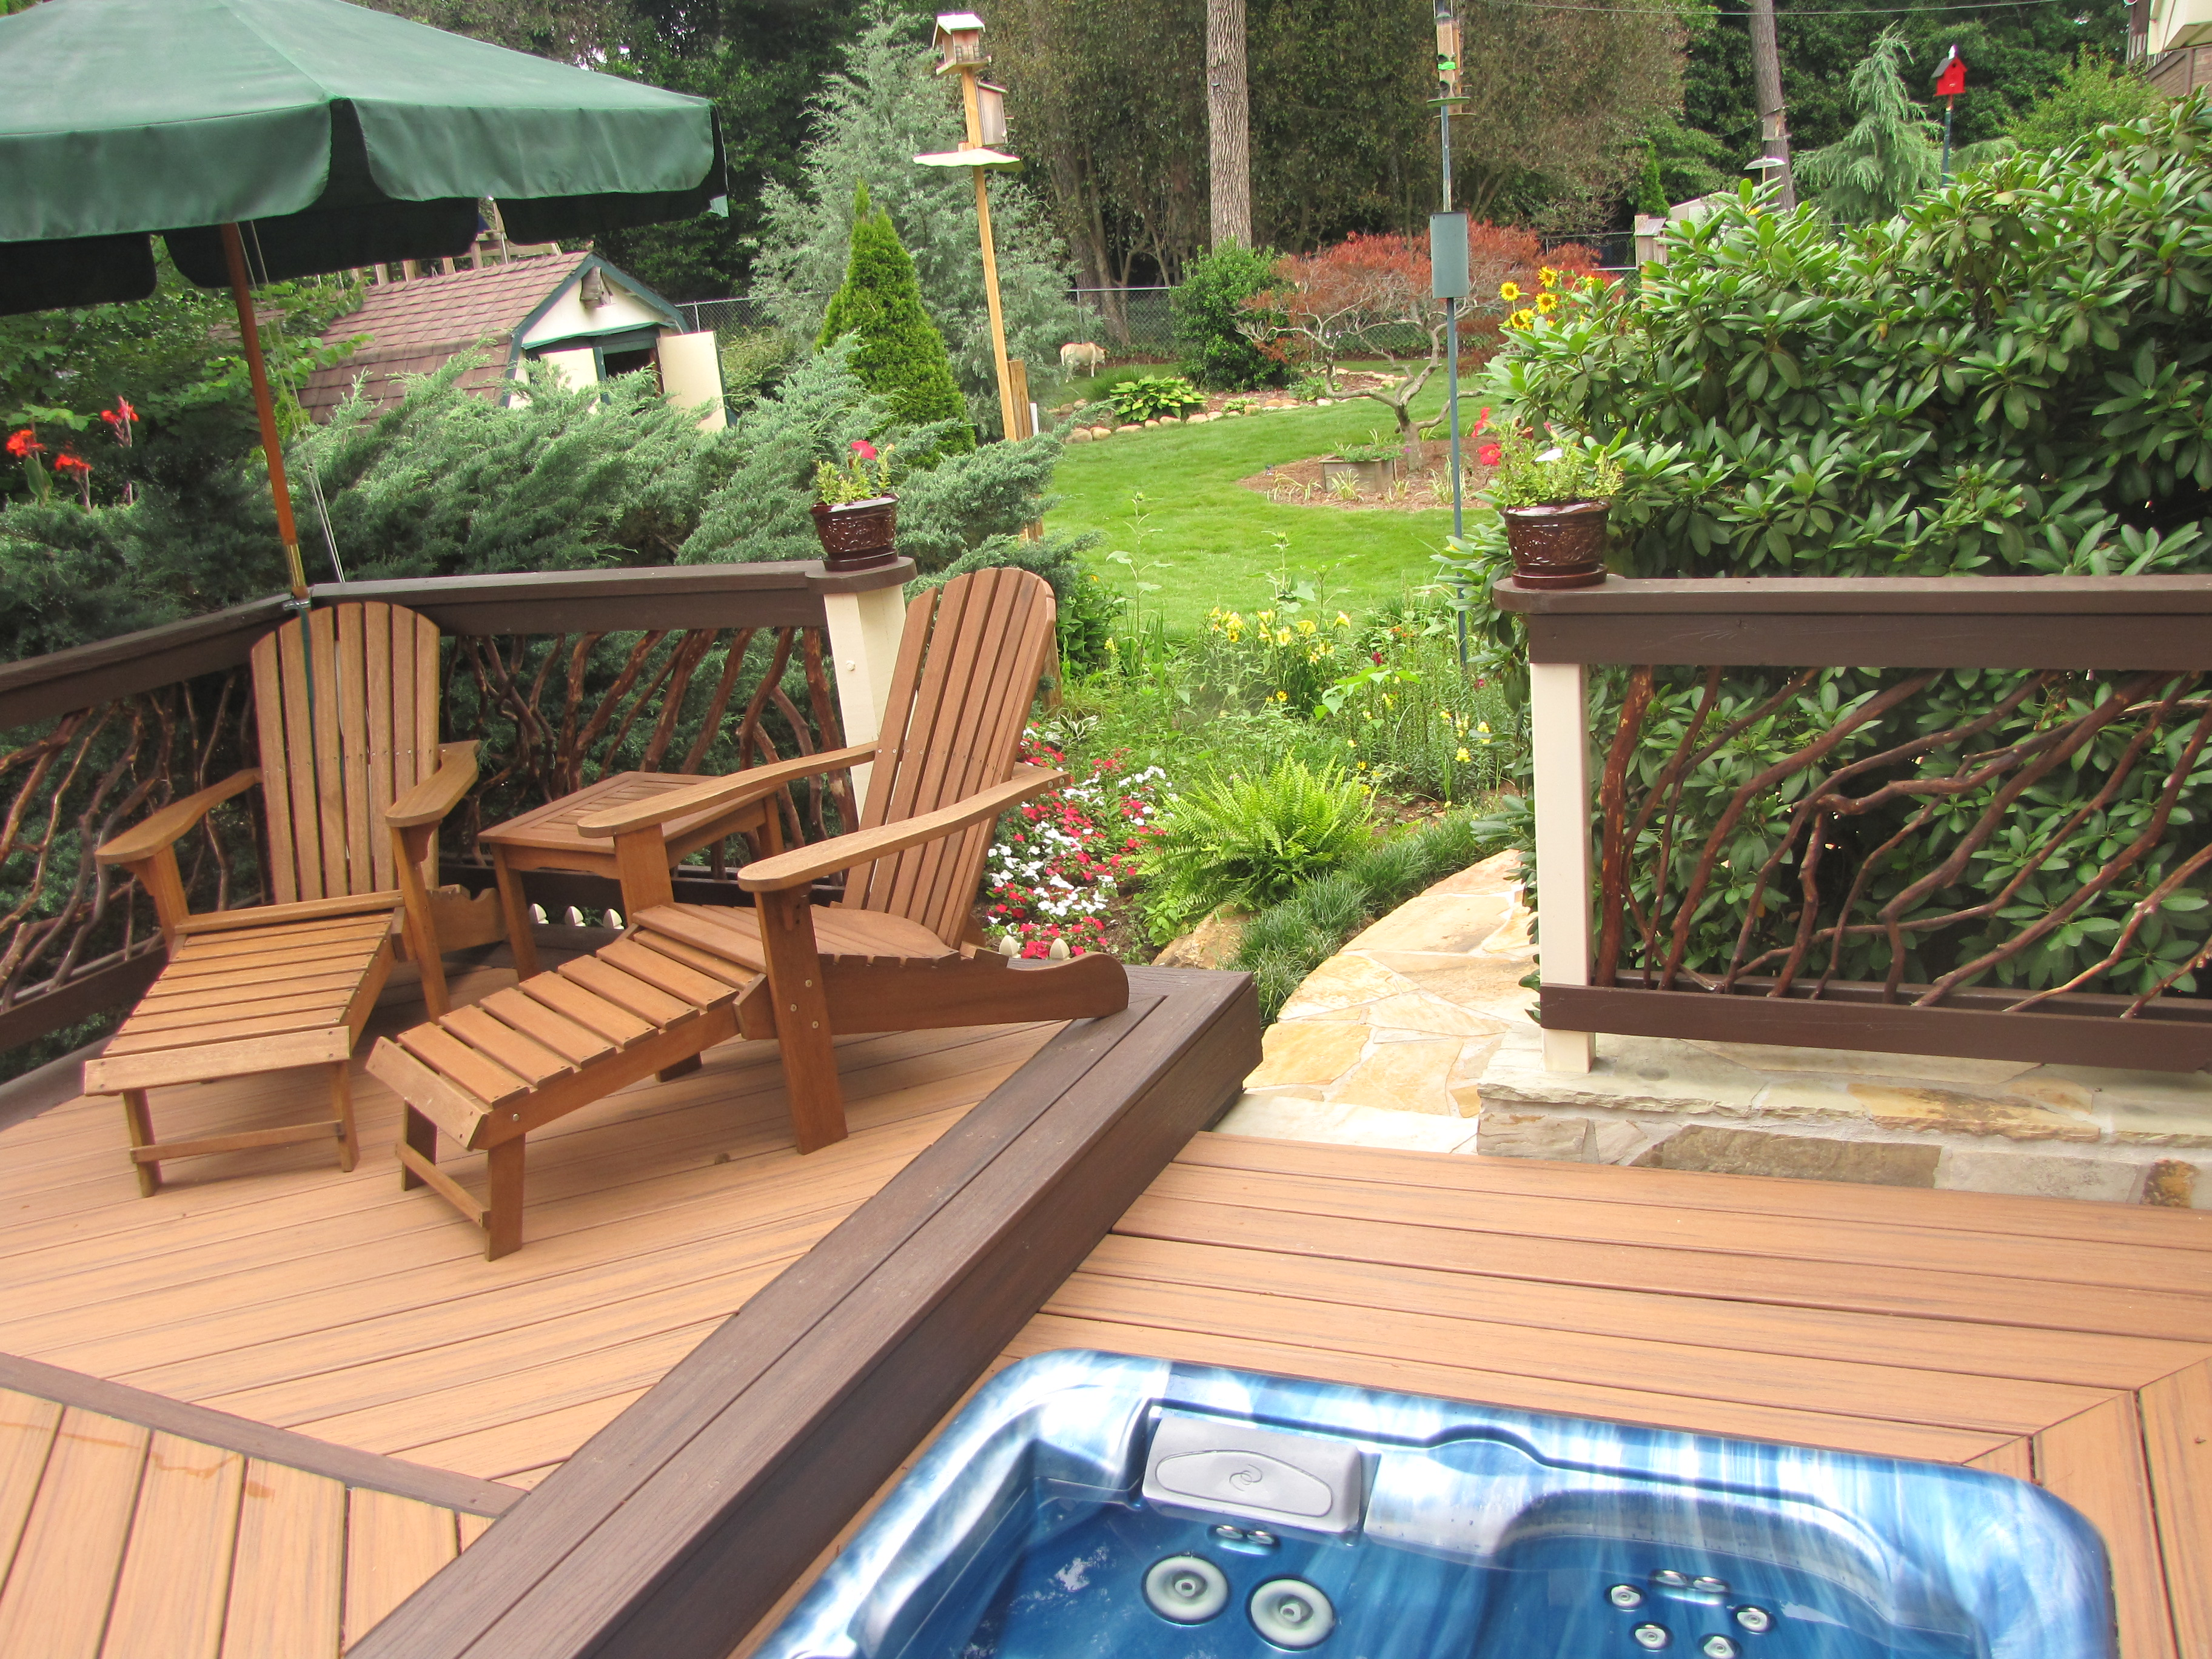 under job tub builder the deck search hot my support site name